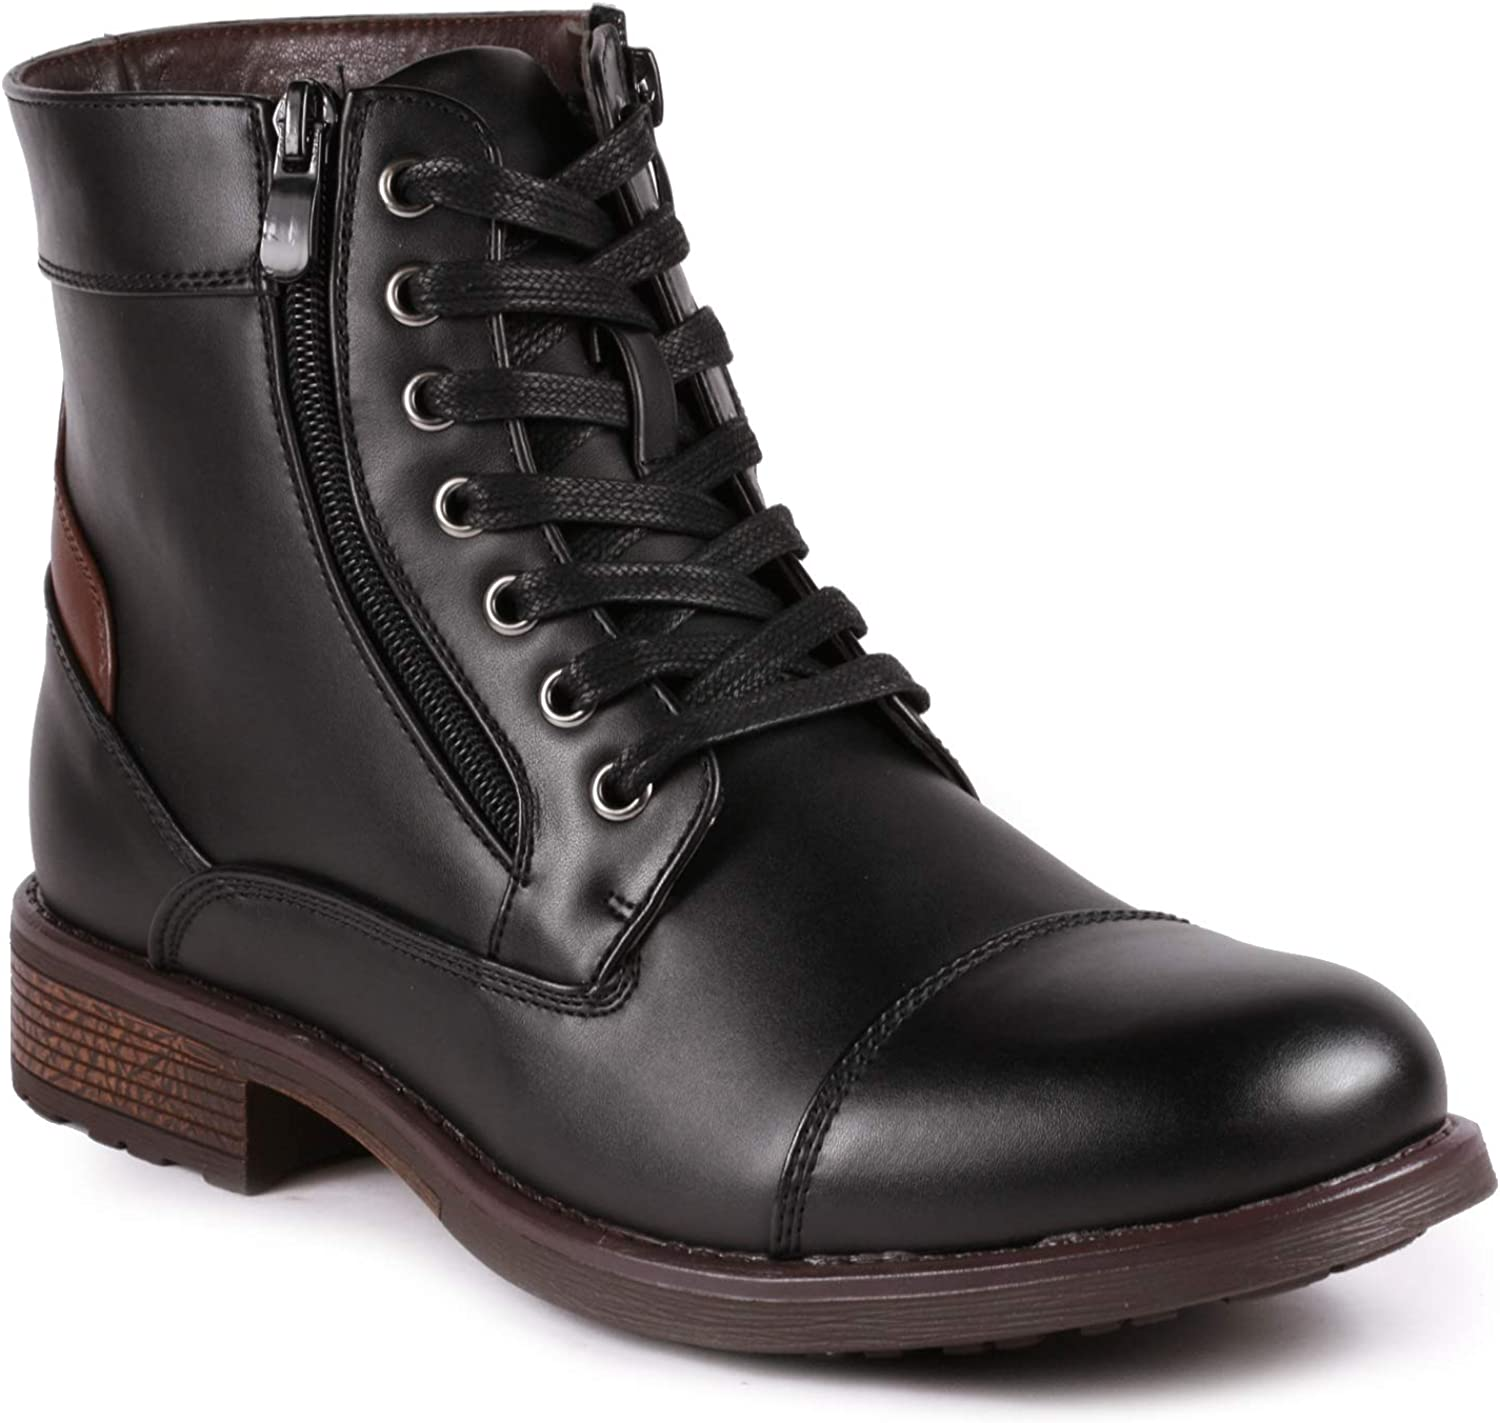 Metrocharm MC305 Men's Lace Up Cap Toe Oxford Boot